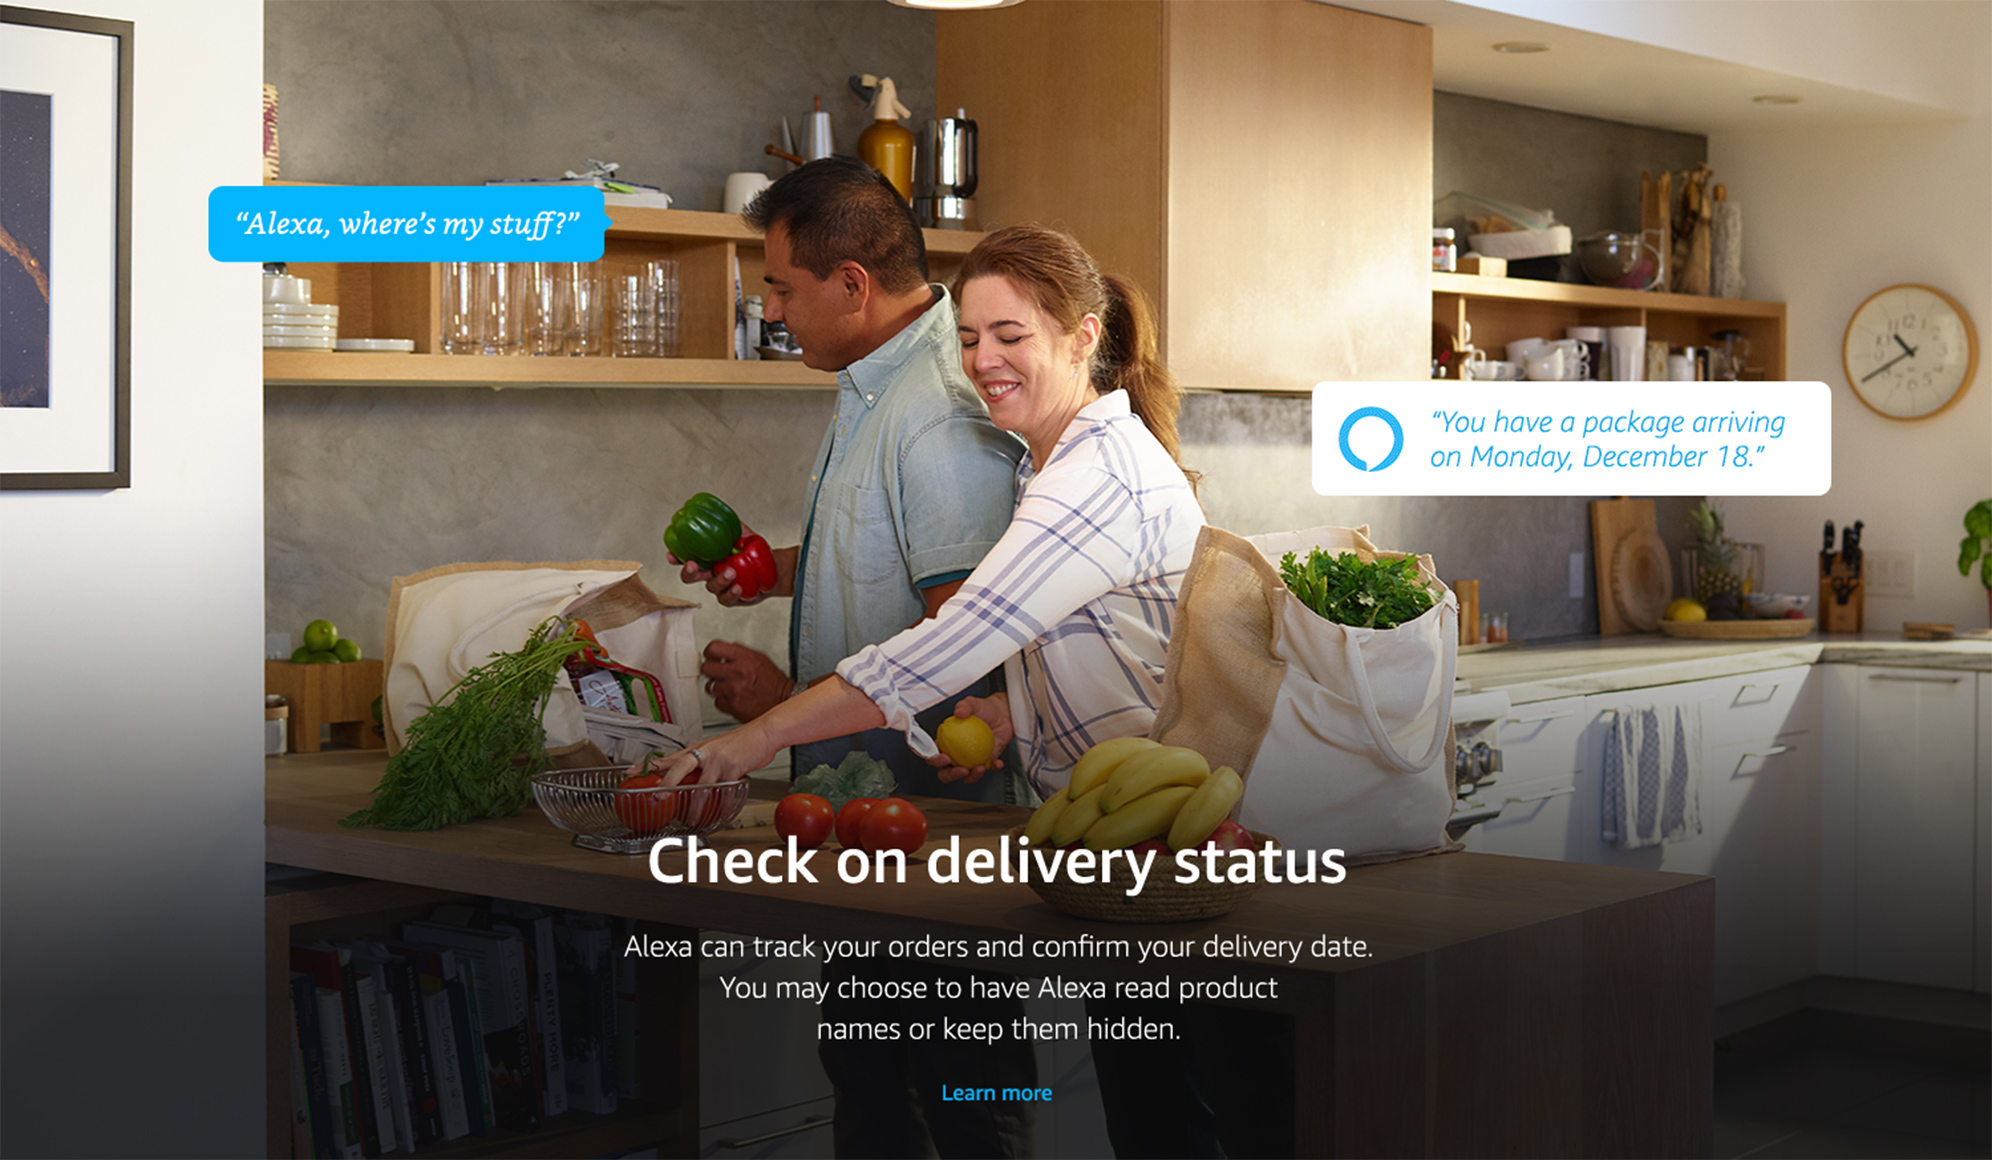 Check on delivery status